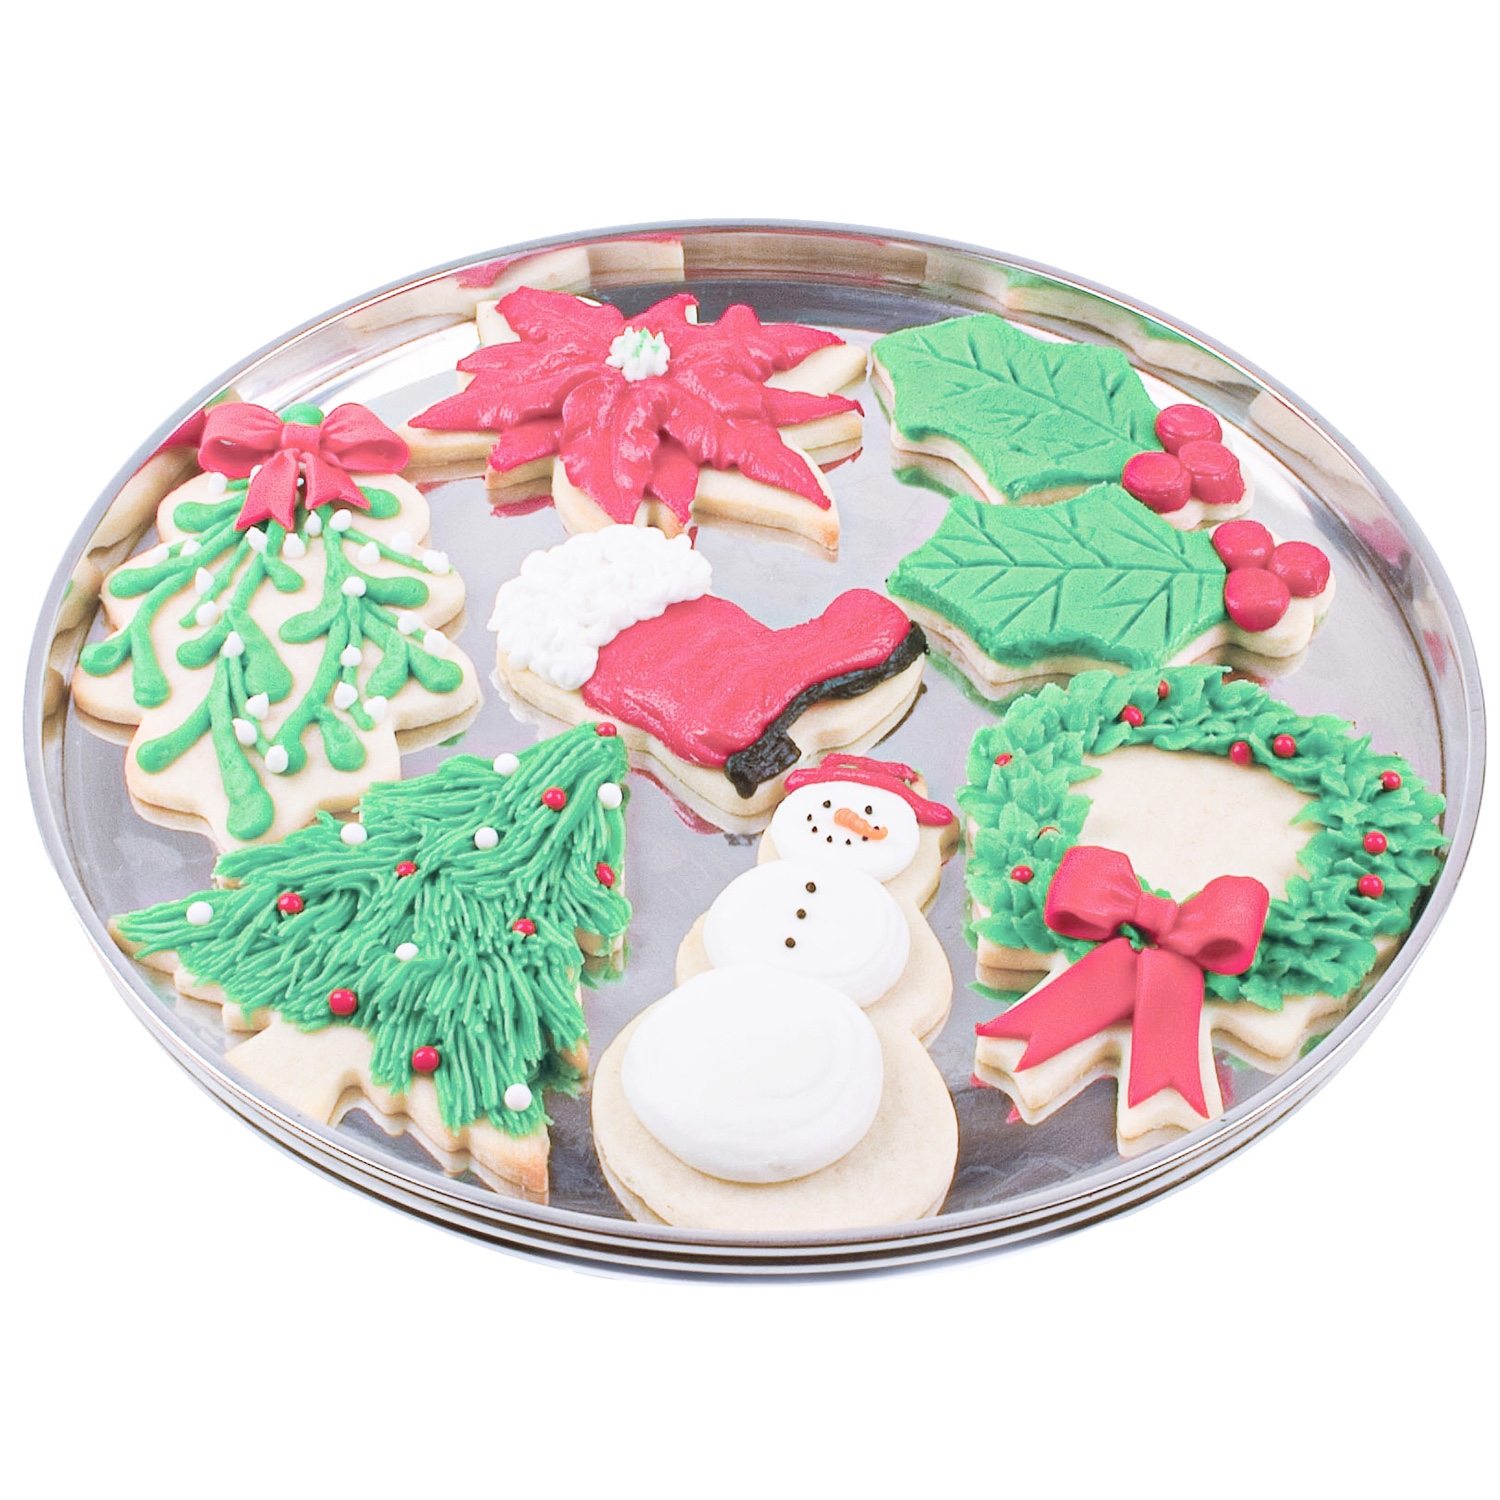 Buttercream Christmas Cut-Out Cookies